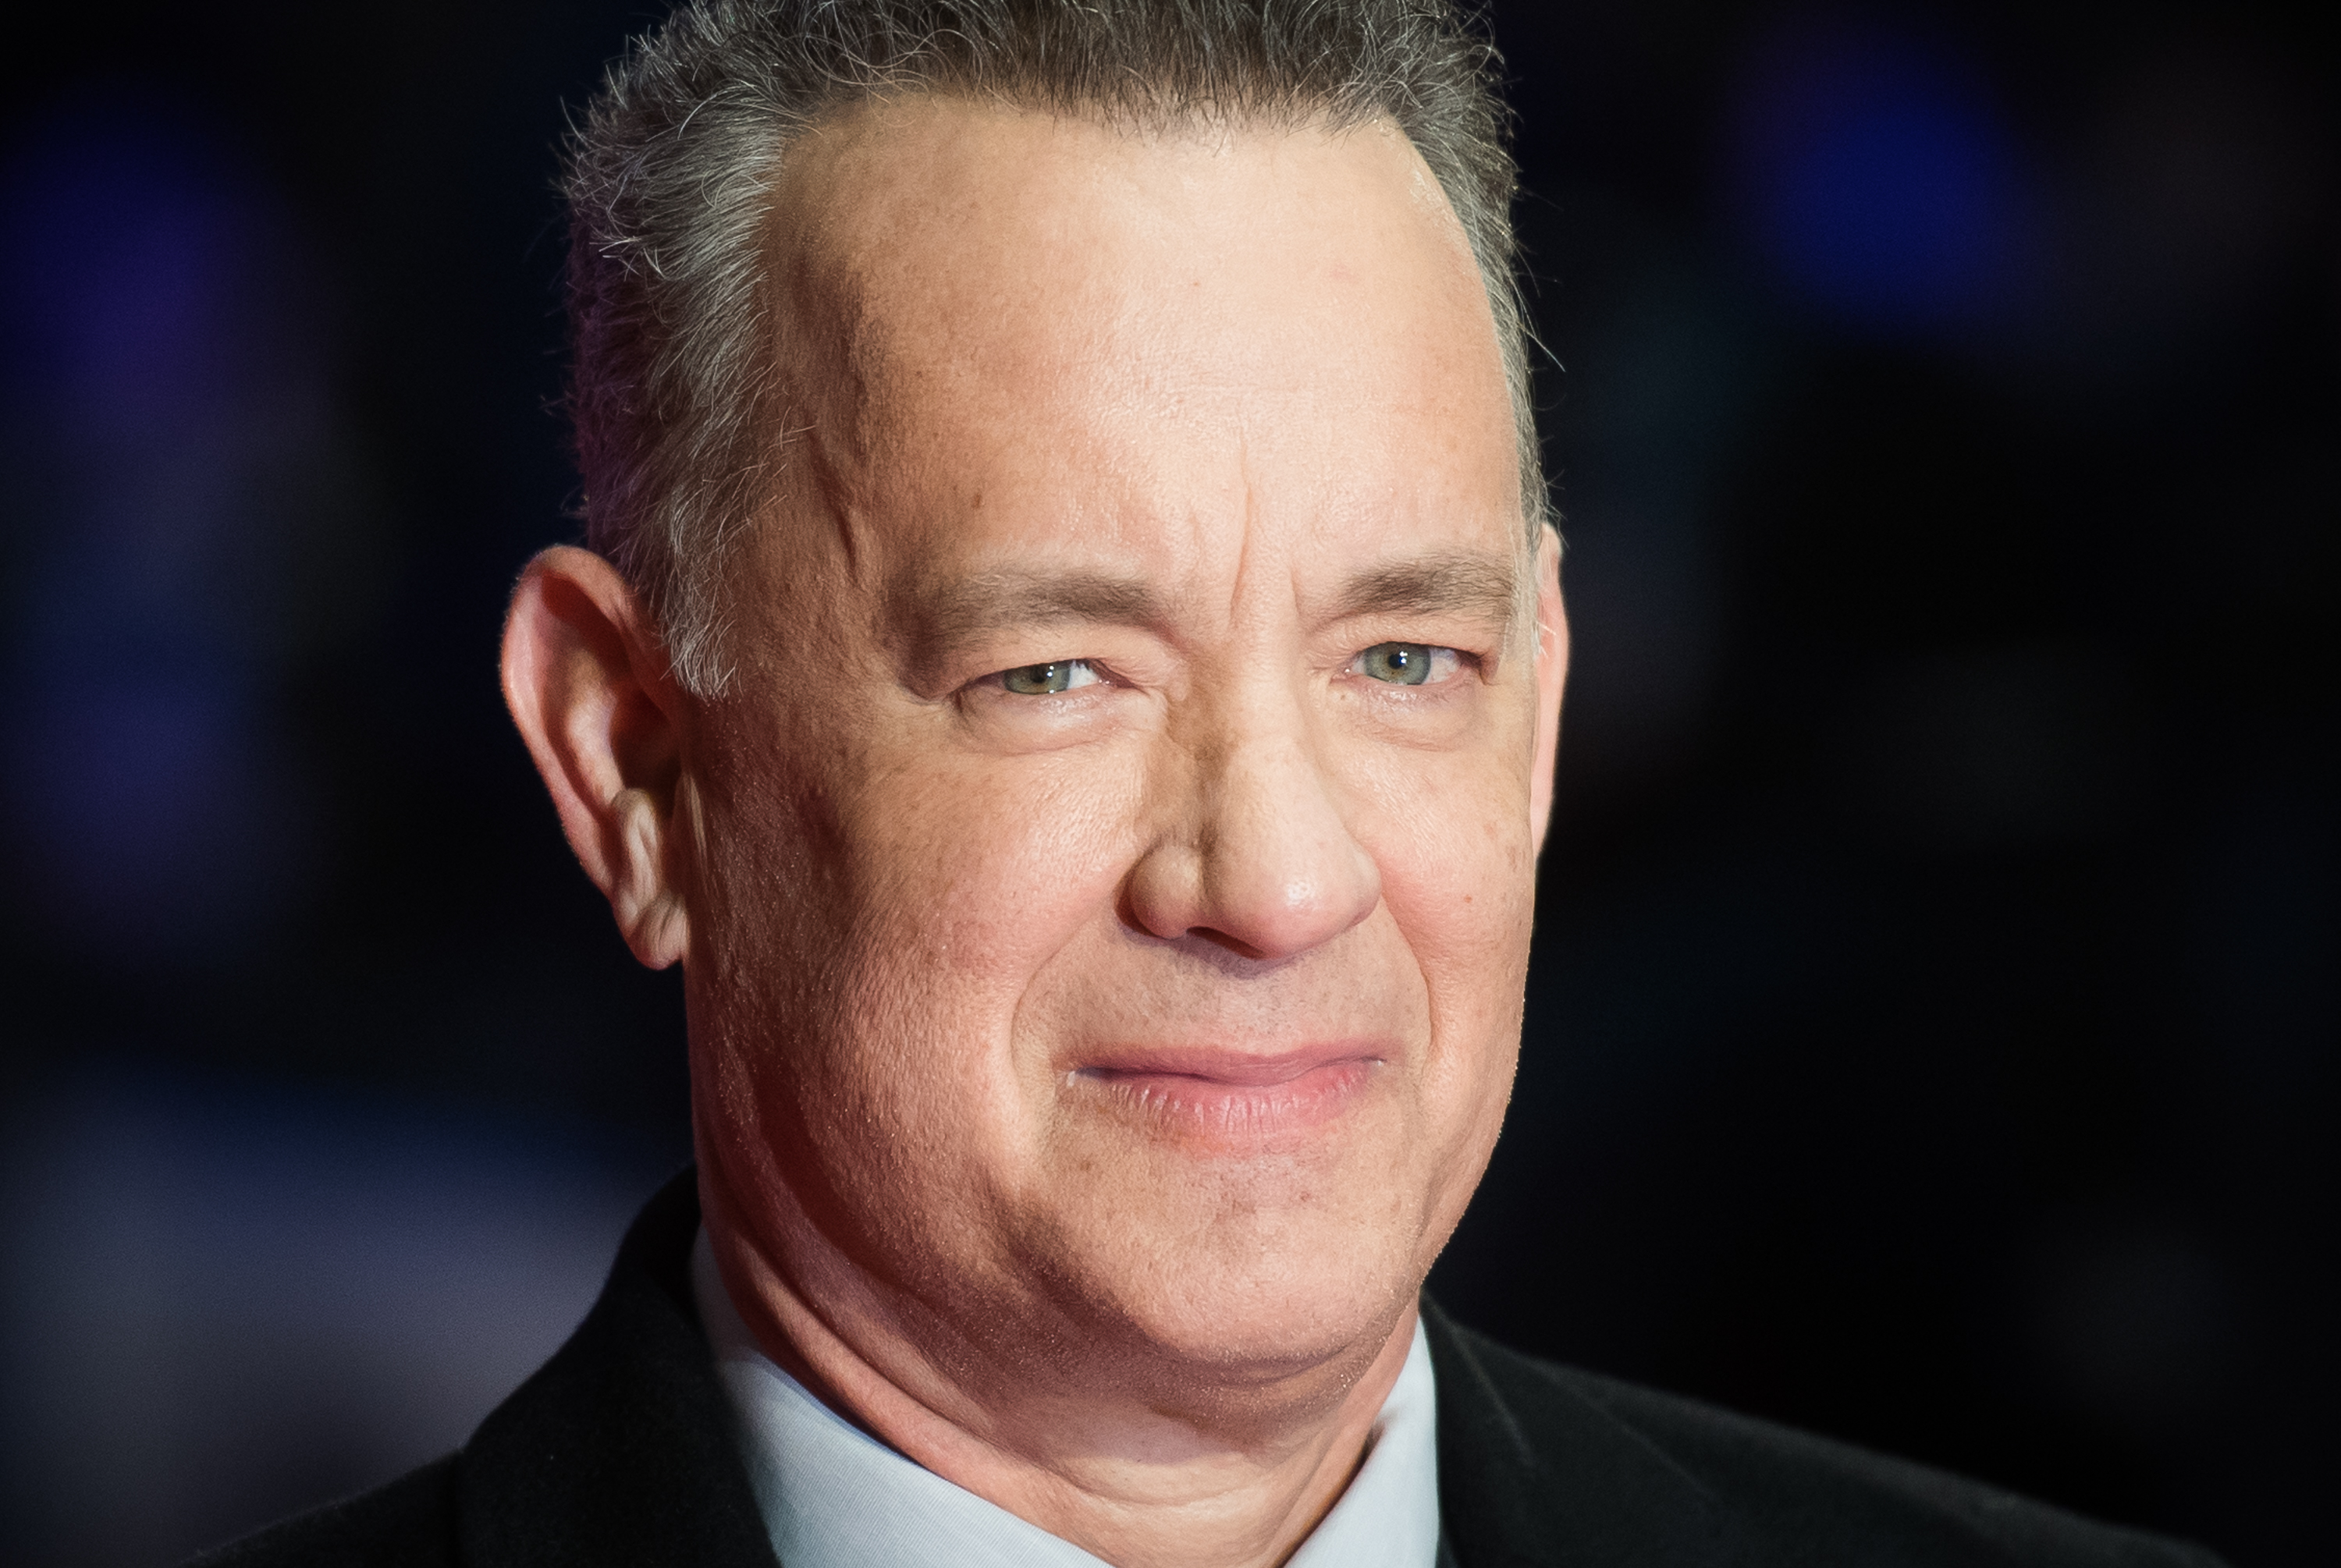 LONDON, ENGLAND - JANUARY 10:  Tom Hanks attends 'The Post' European Premeire at Odeon Leicester Square on January 10, 2018 in London, England.  (Photo by Samir Hussein/Samir Hussein/WireImage)